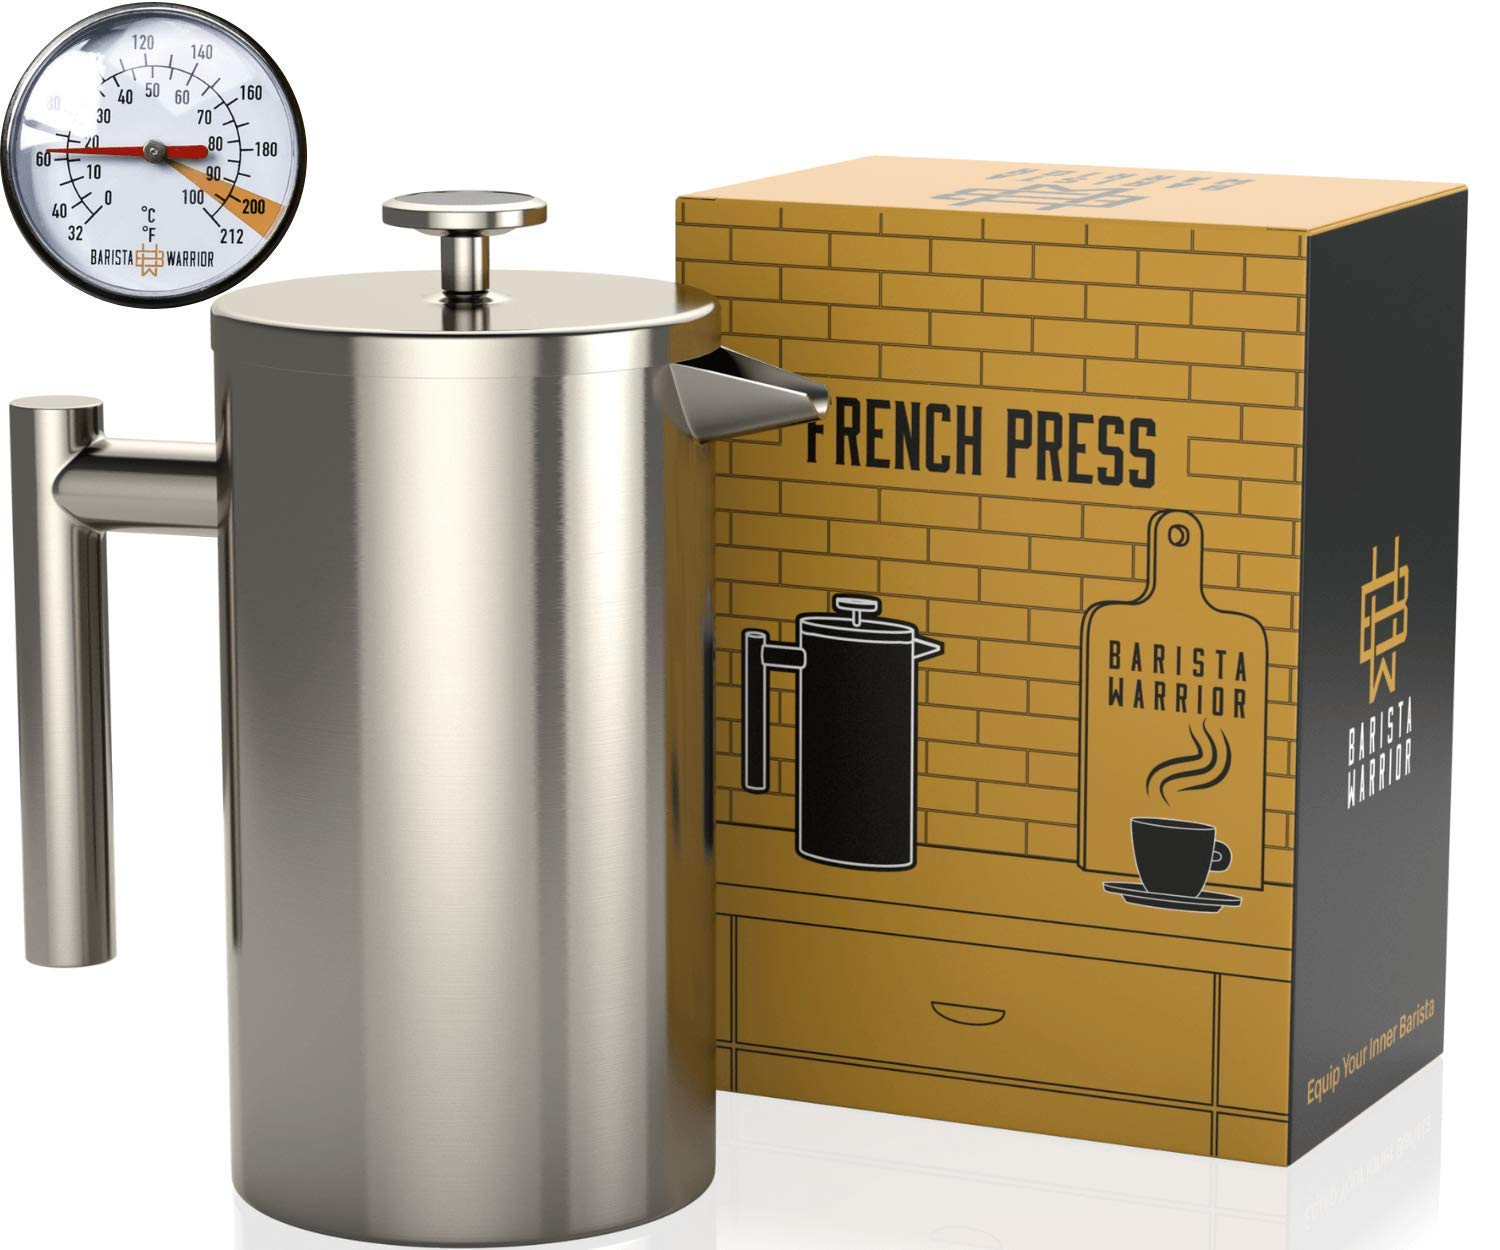 Stainless Steel French Press with Thermometer - Insulated French Press Coffee Maker - (1.0L | 34 fl oz | Silver)